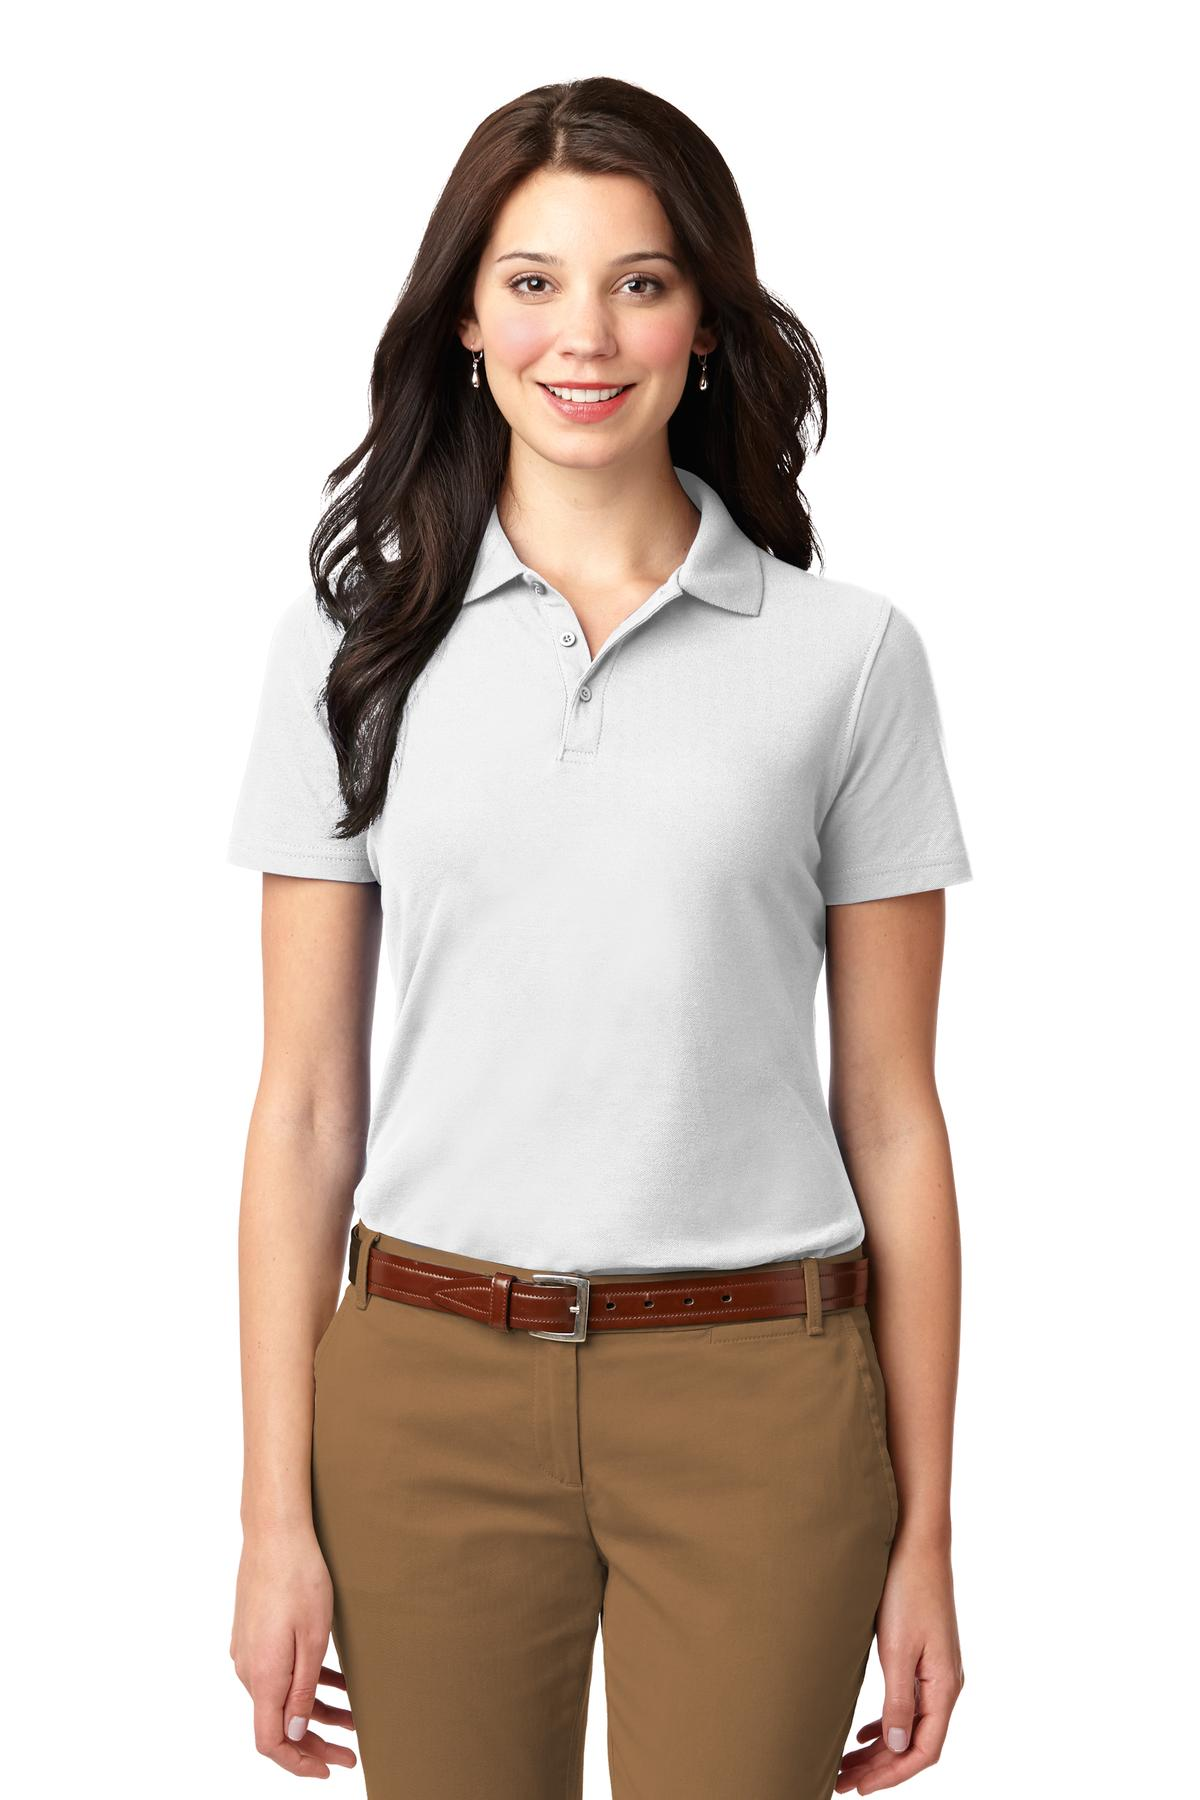 Brilliant Blue Port Authority Ladies Silk Touch Performance Polo.